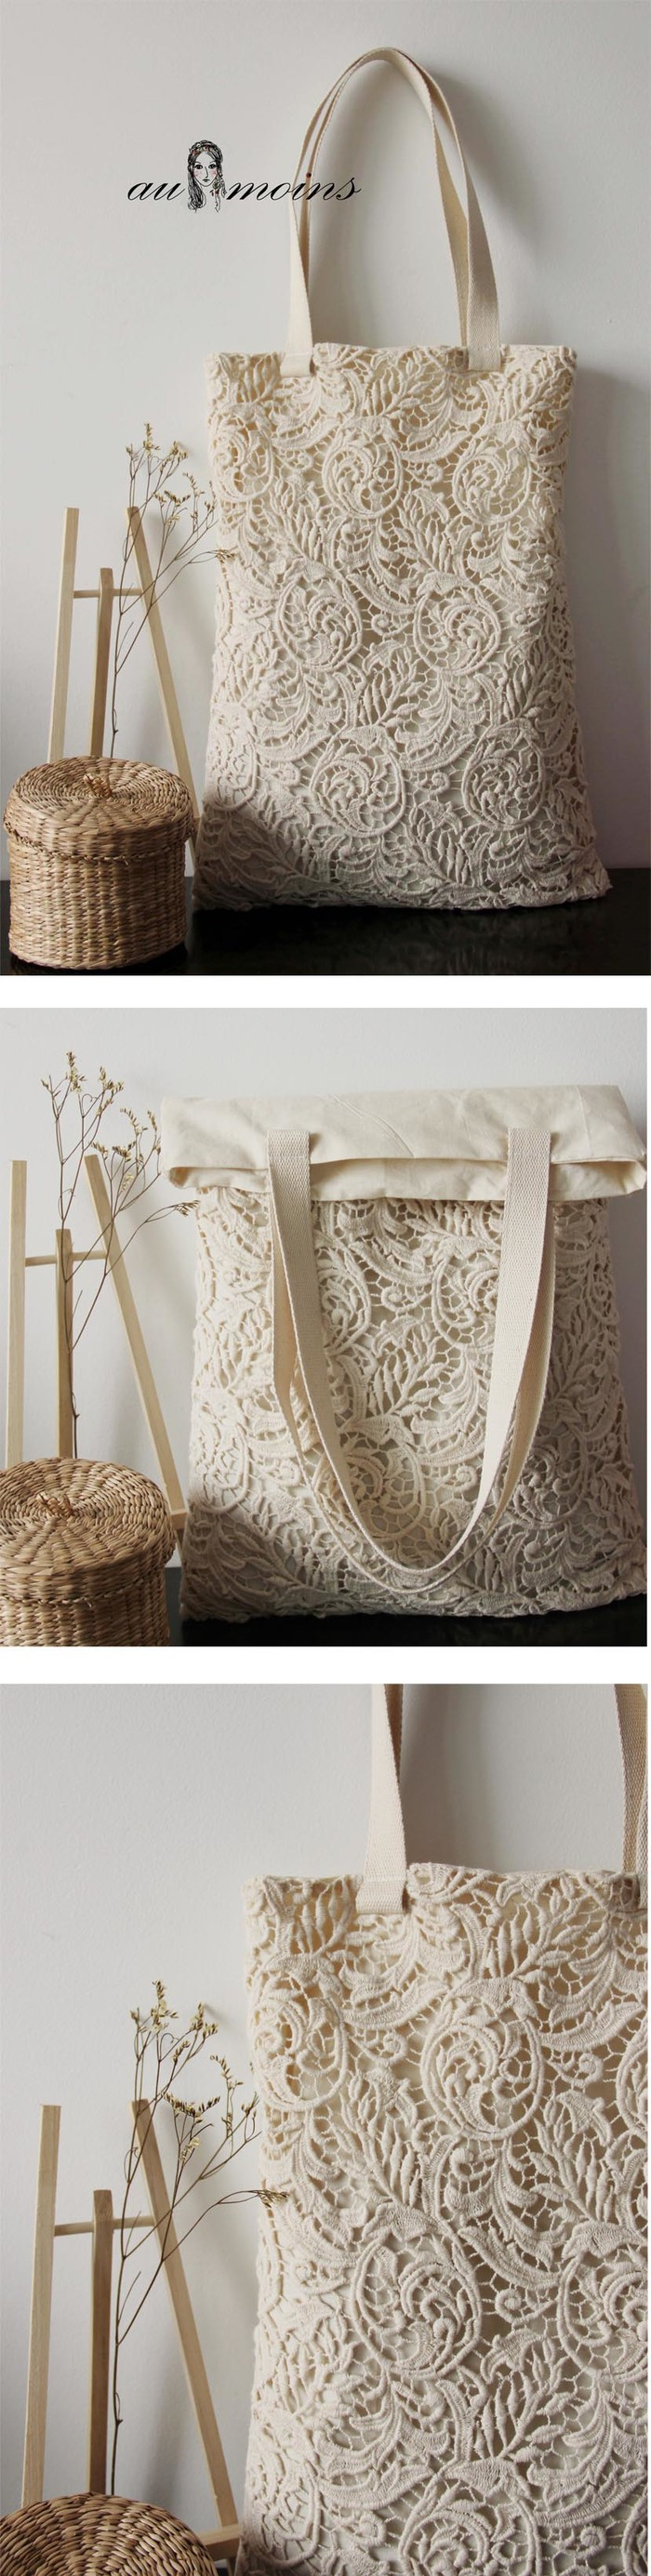 Tante bellissime borse in stile shabby chic